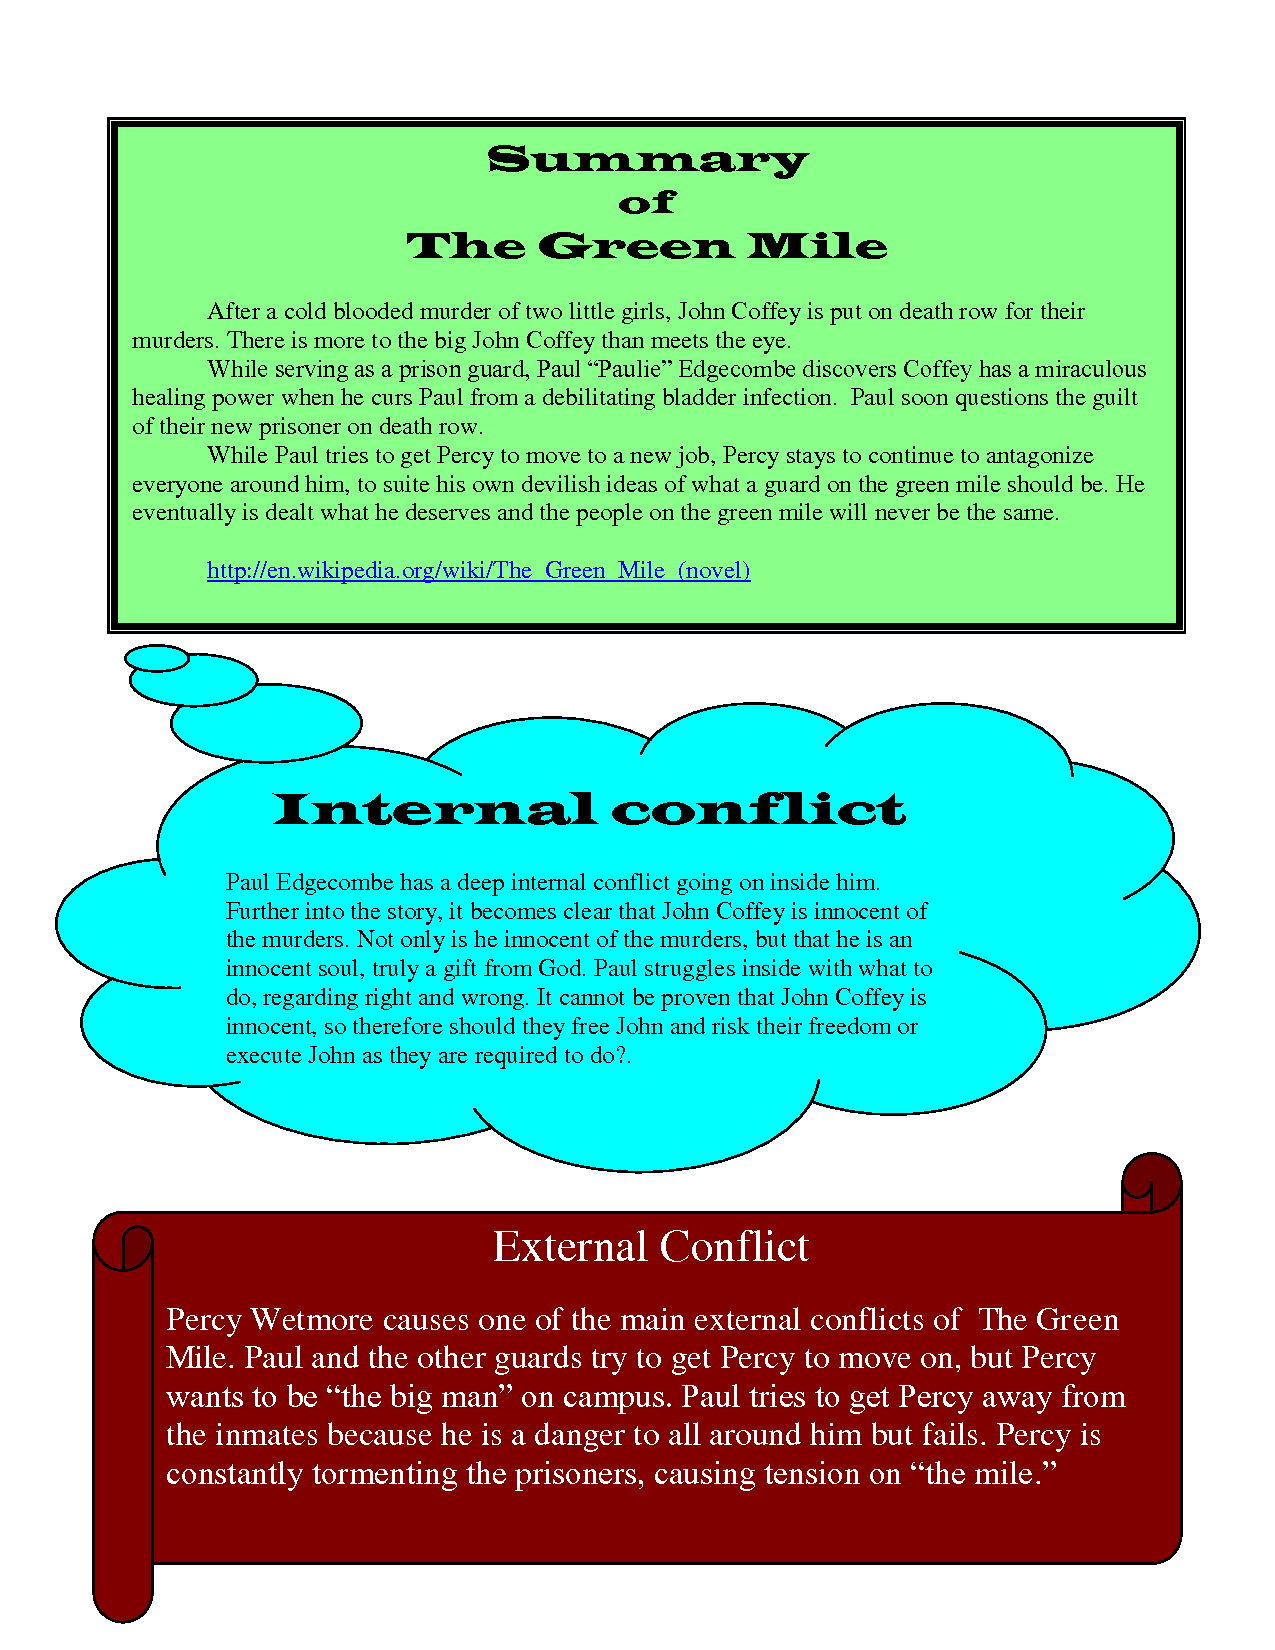 external conflict quotes quotesgram